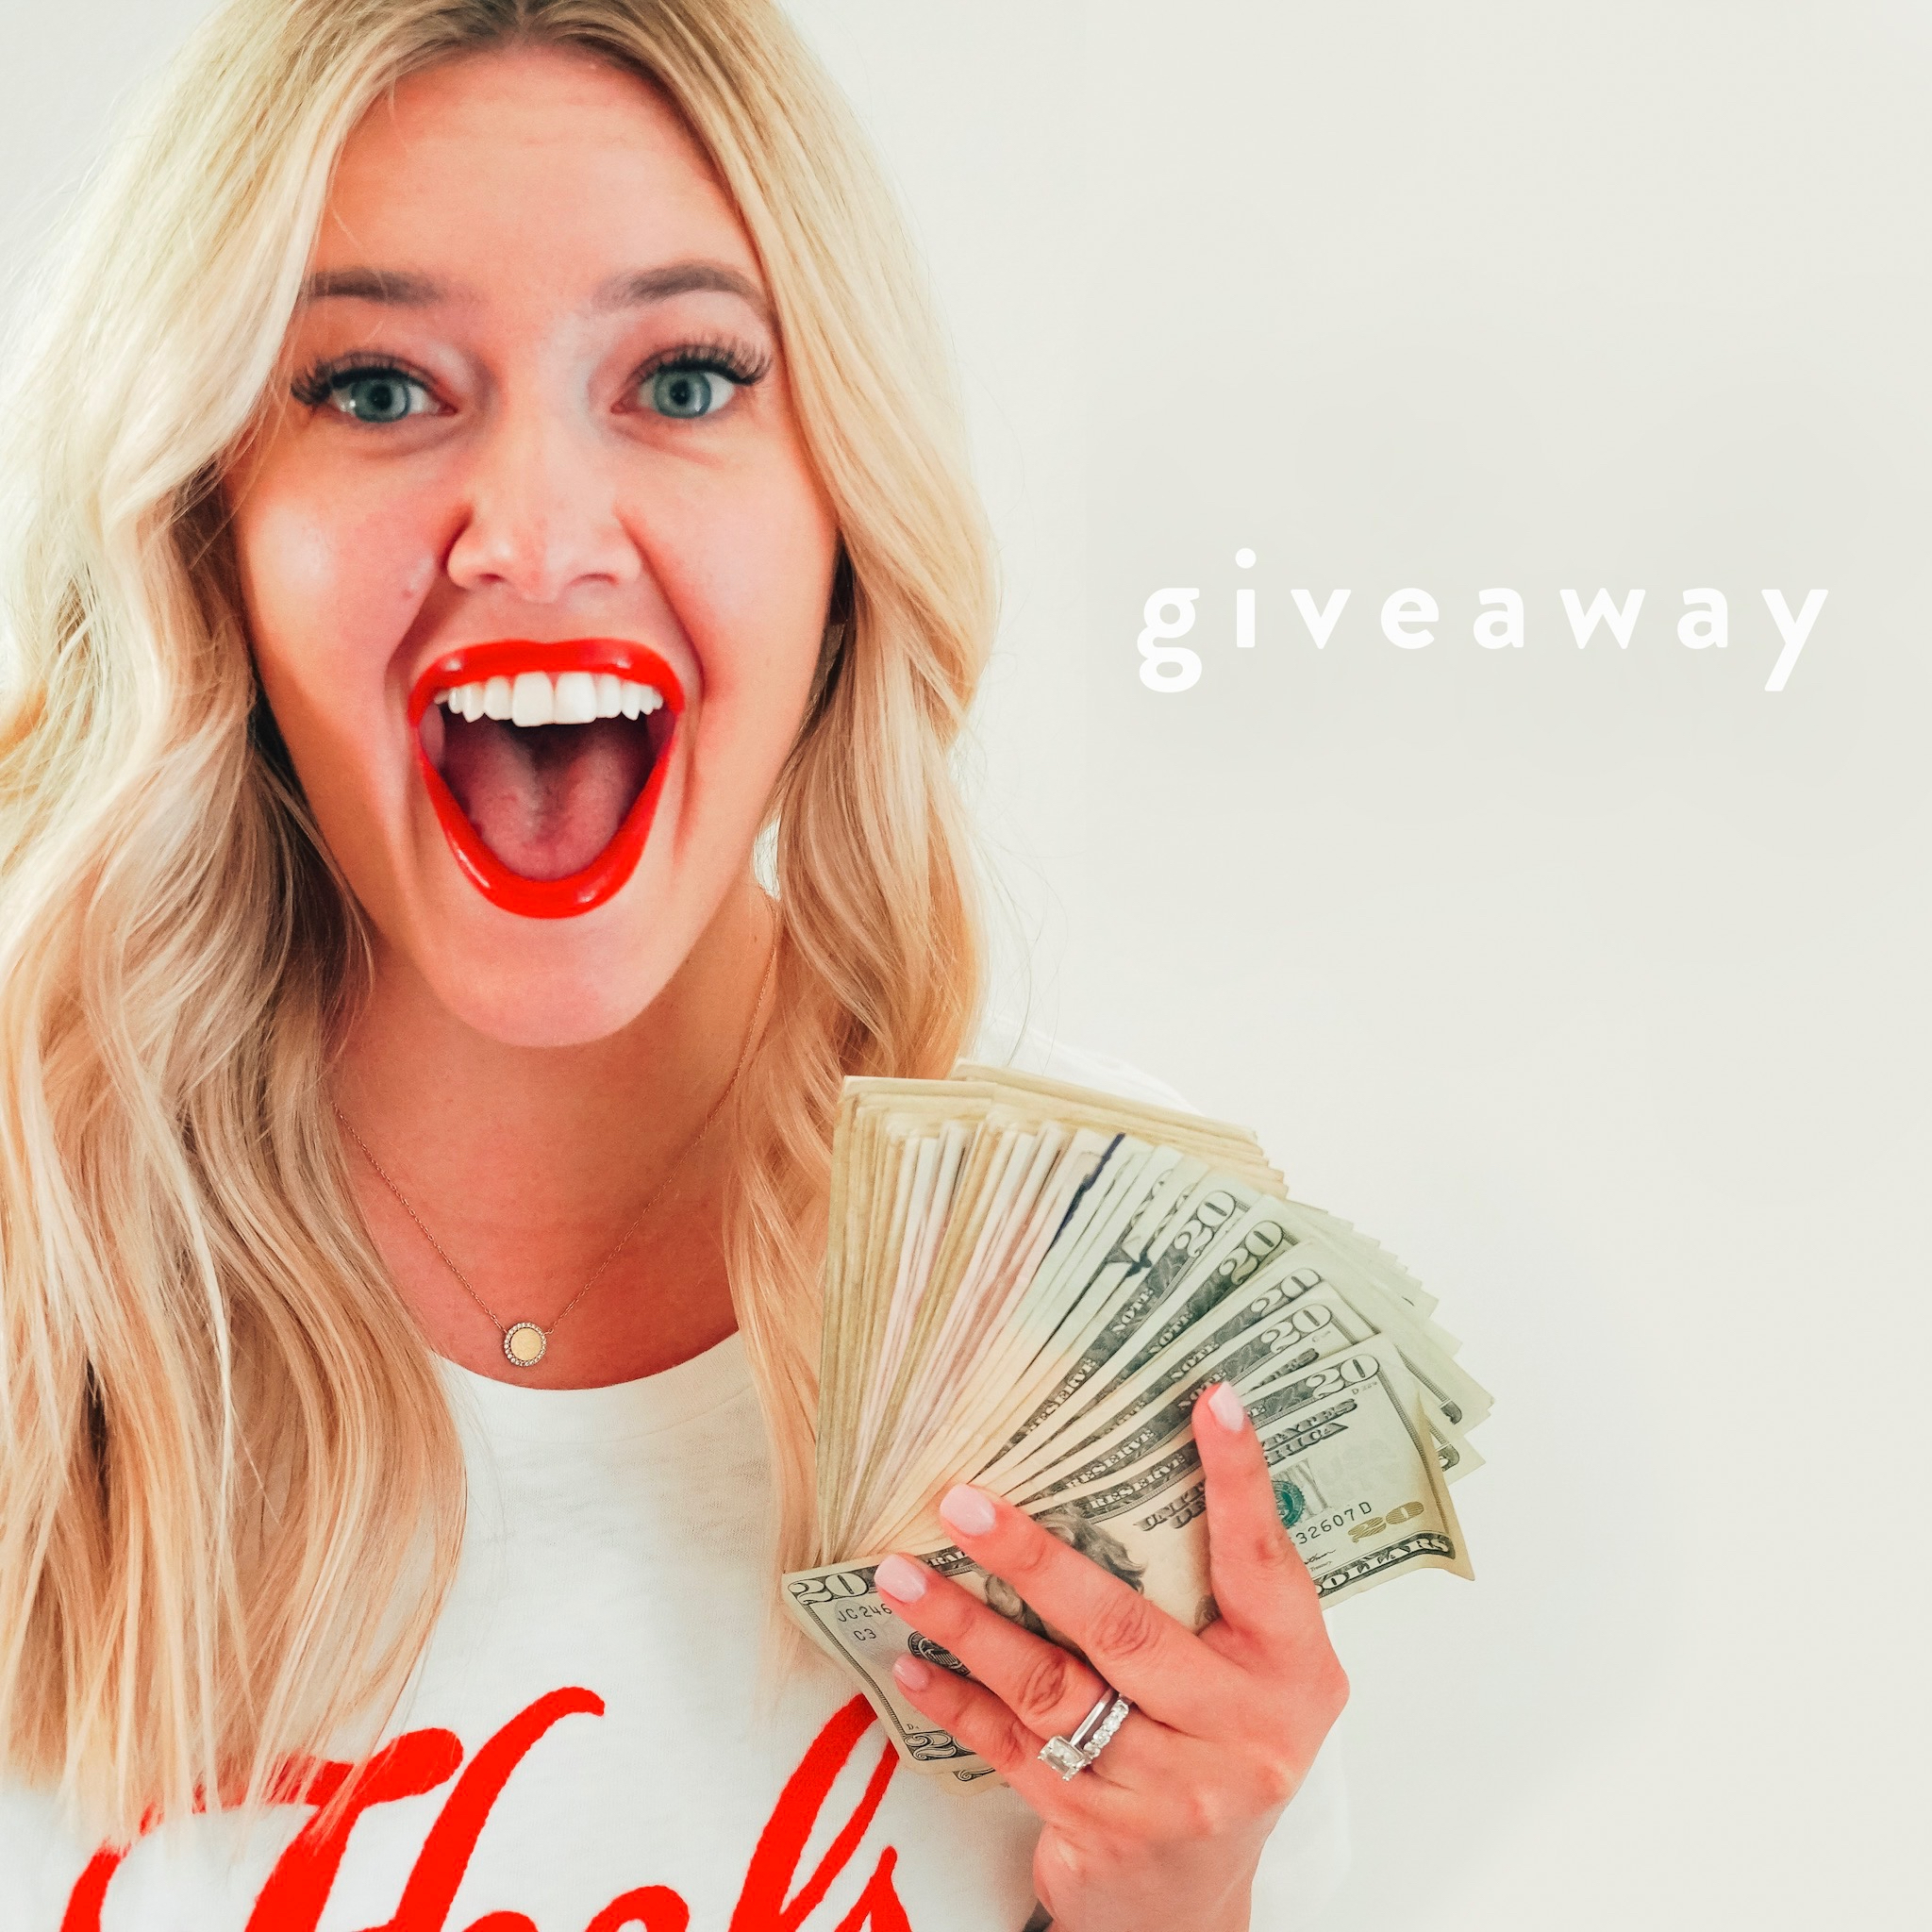 girl boss cash giveaway.jpg